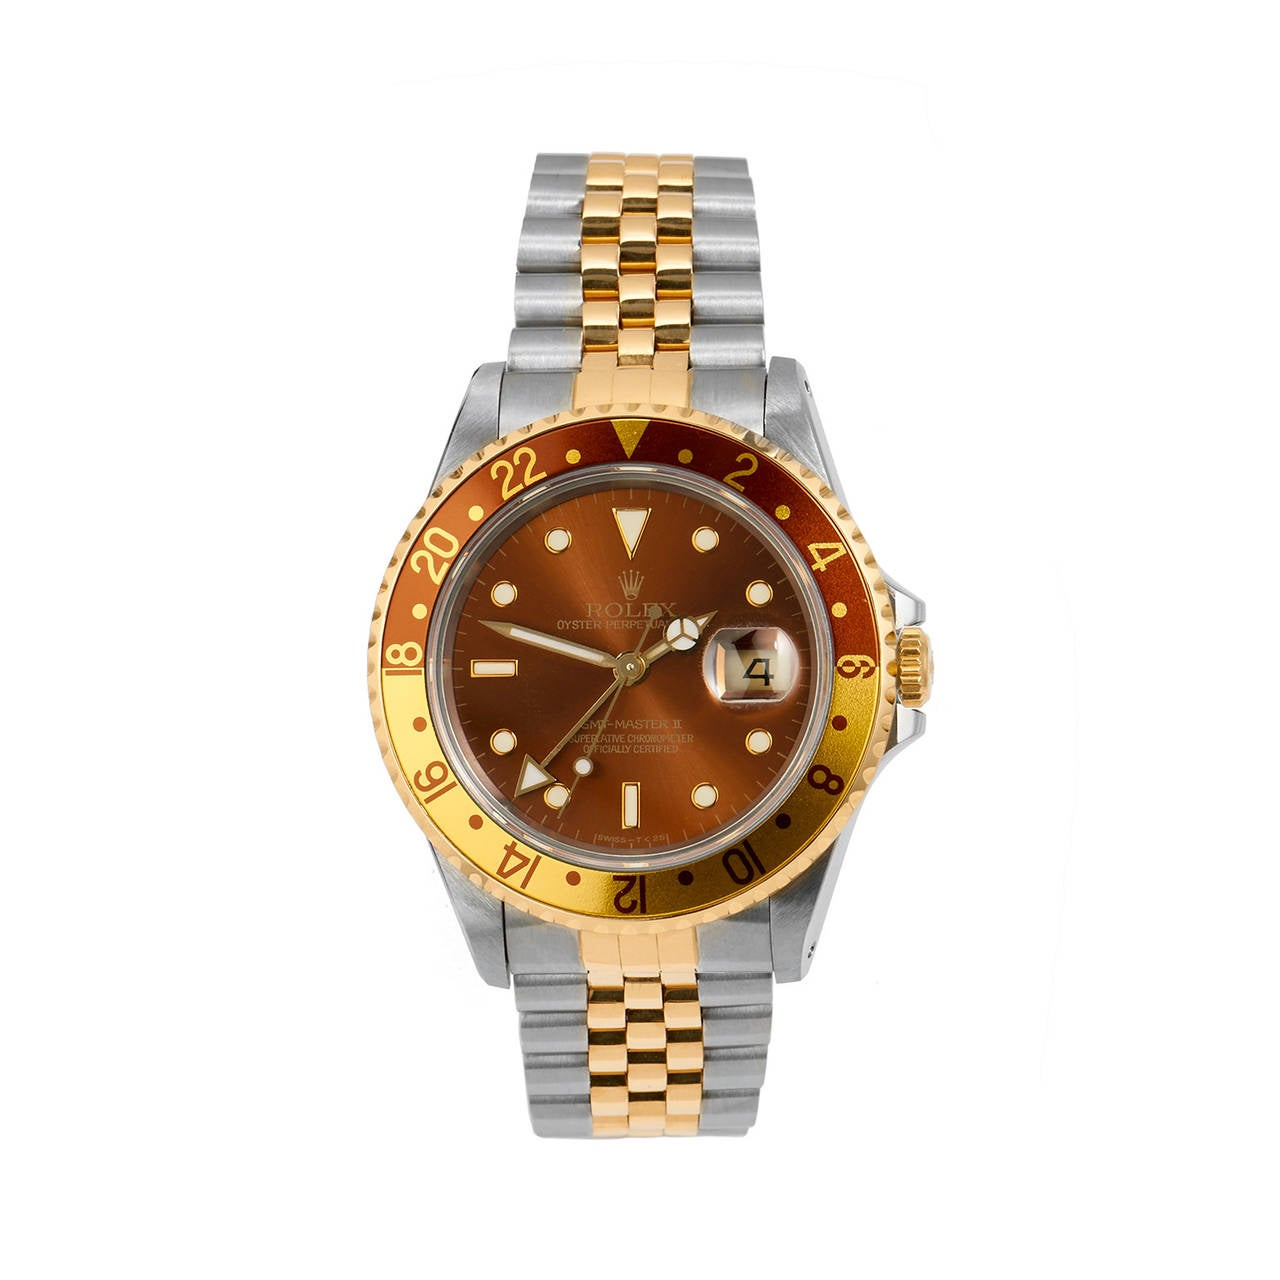 rolex yellow gold stainless steel gmt master 2 wristwatch. Black Bedroom Furniture Sets. Home Design Ideas